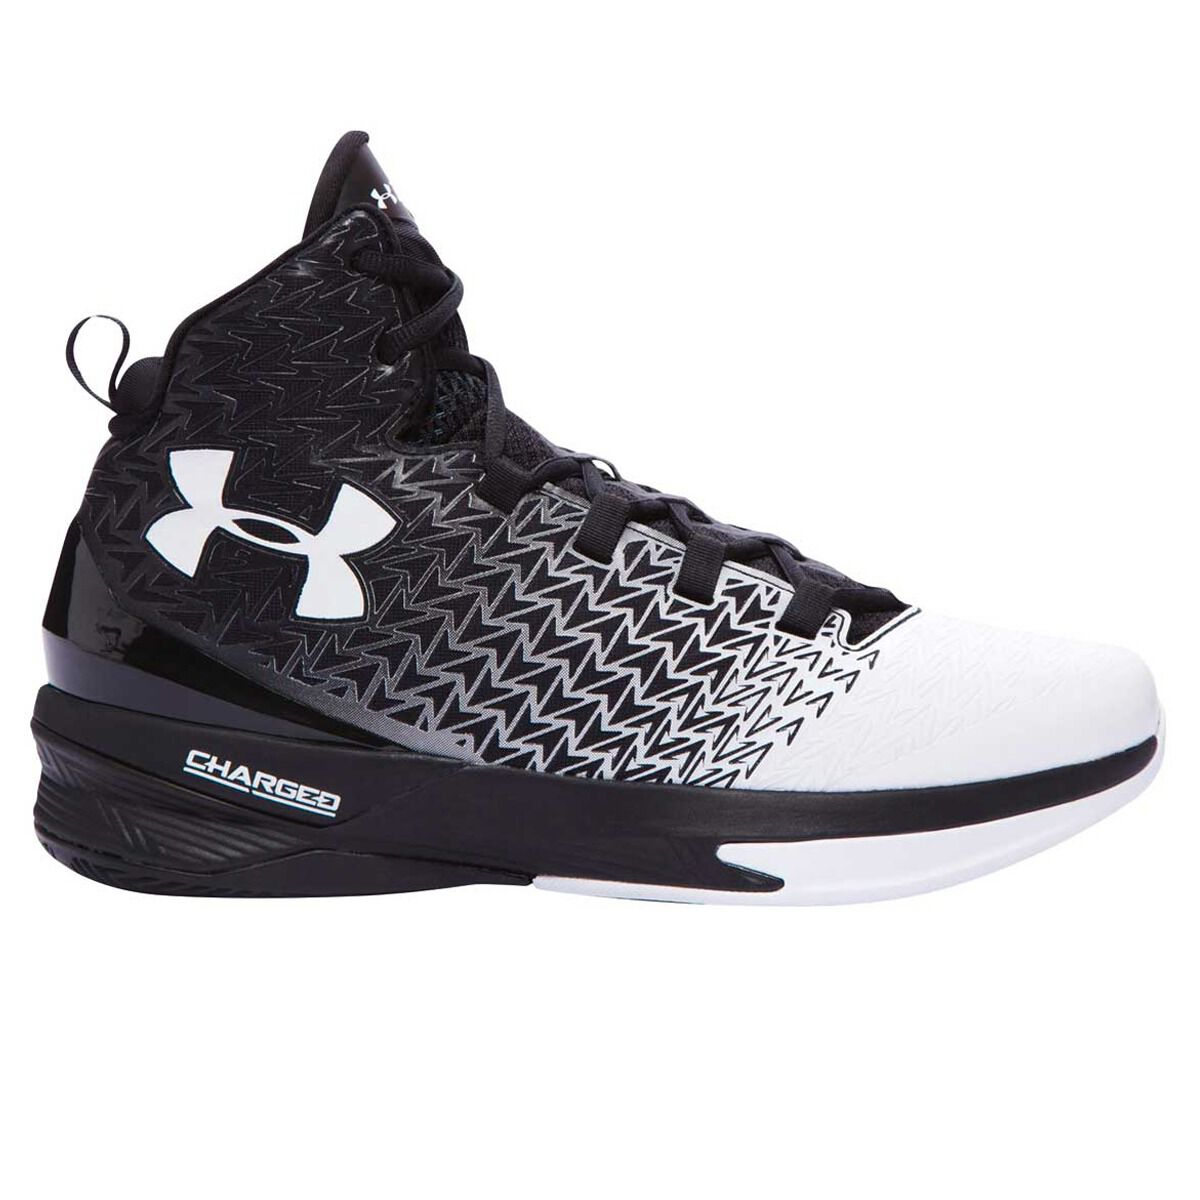 best authentic c5b30 019ee ... switzerland under armour clutchfit drive 3 mens basketball shoes black  white us 7 black f4227 367d5